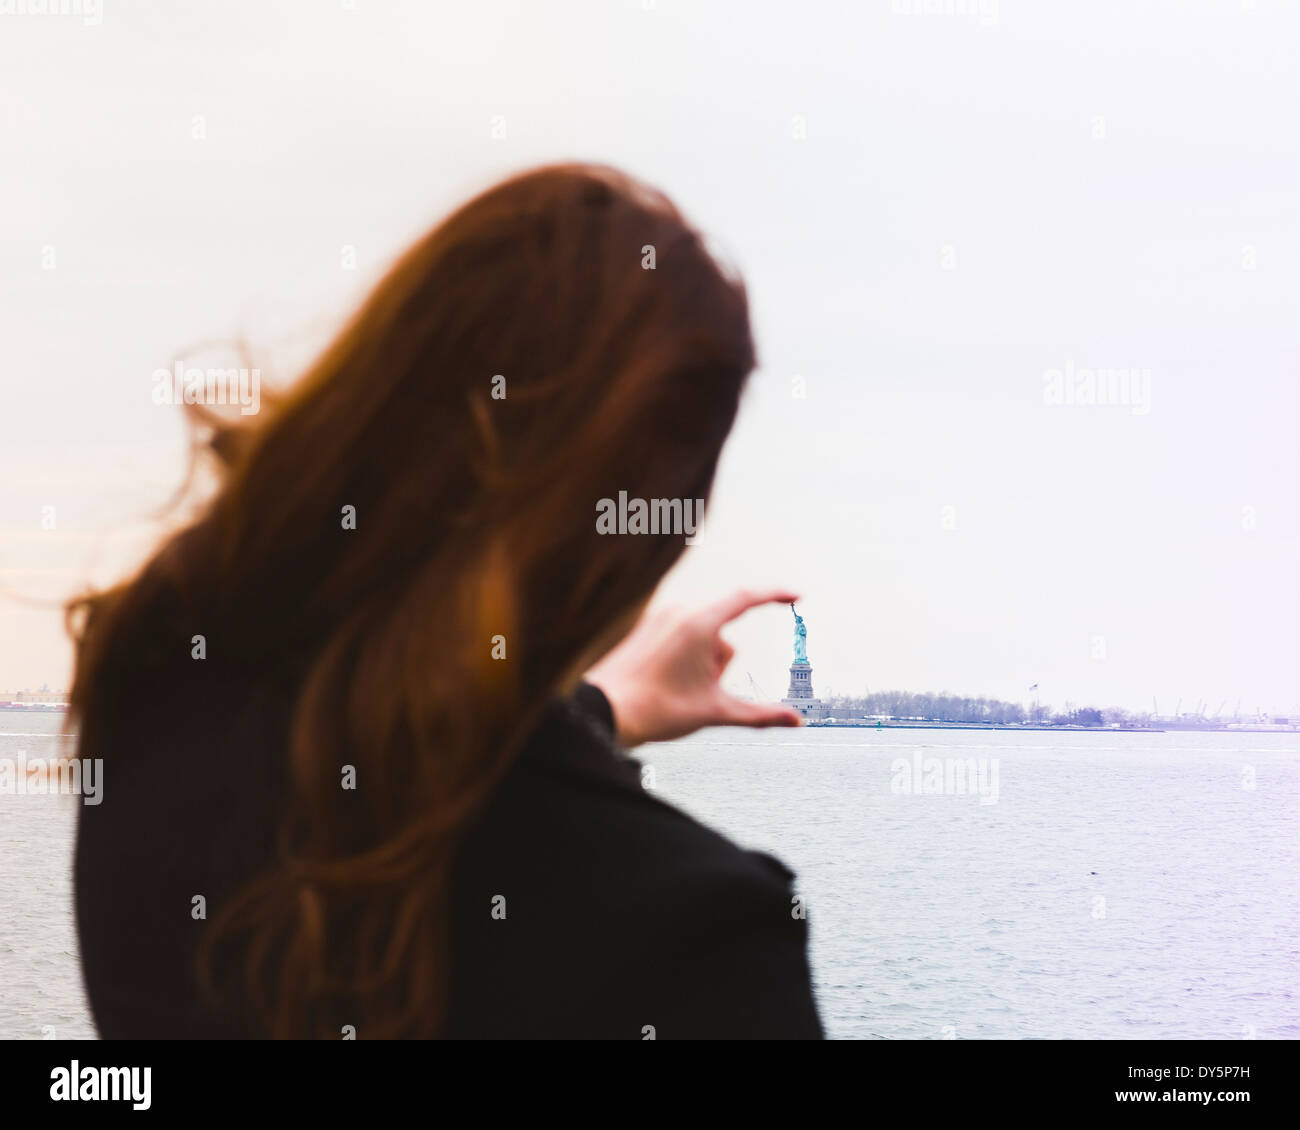 Young woman aligning fingers with statue of liberty, New York, USA - Stock Image